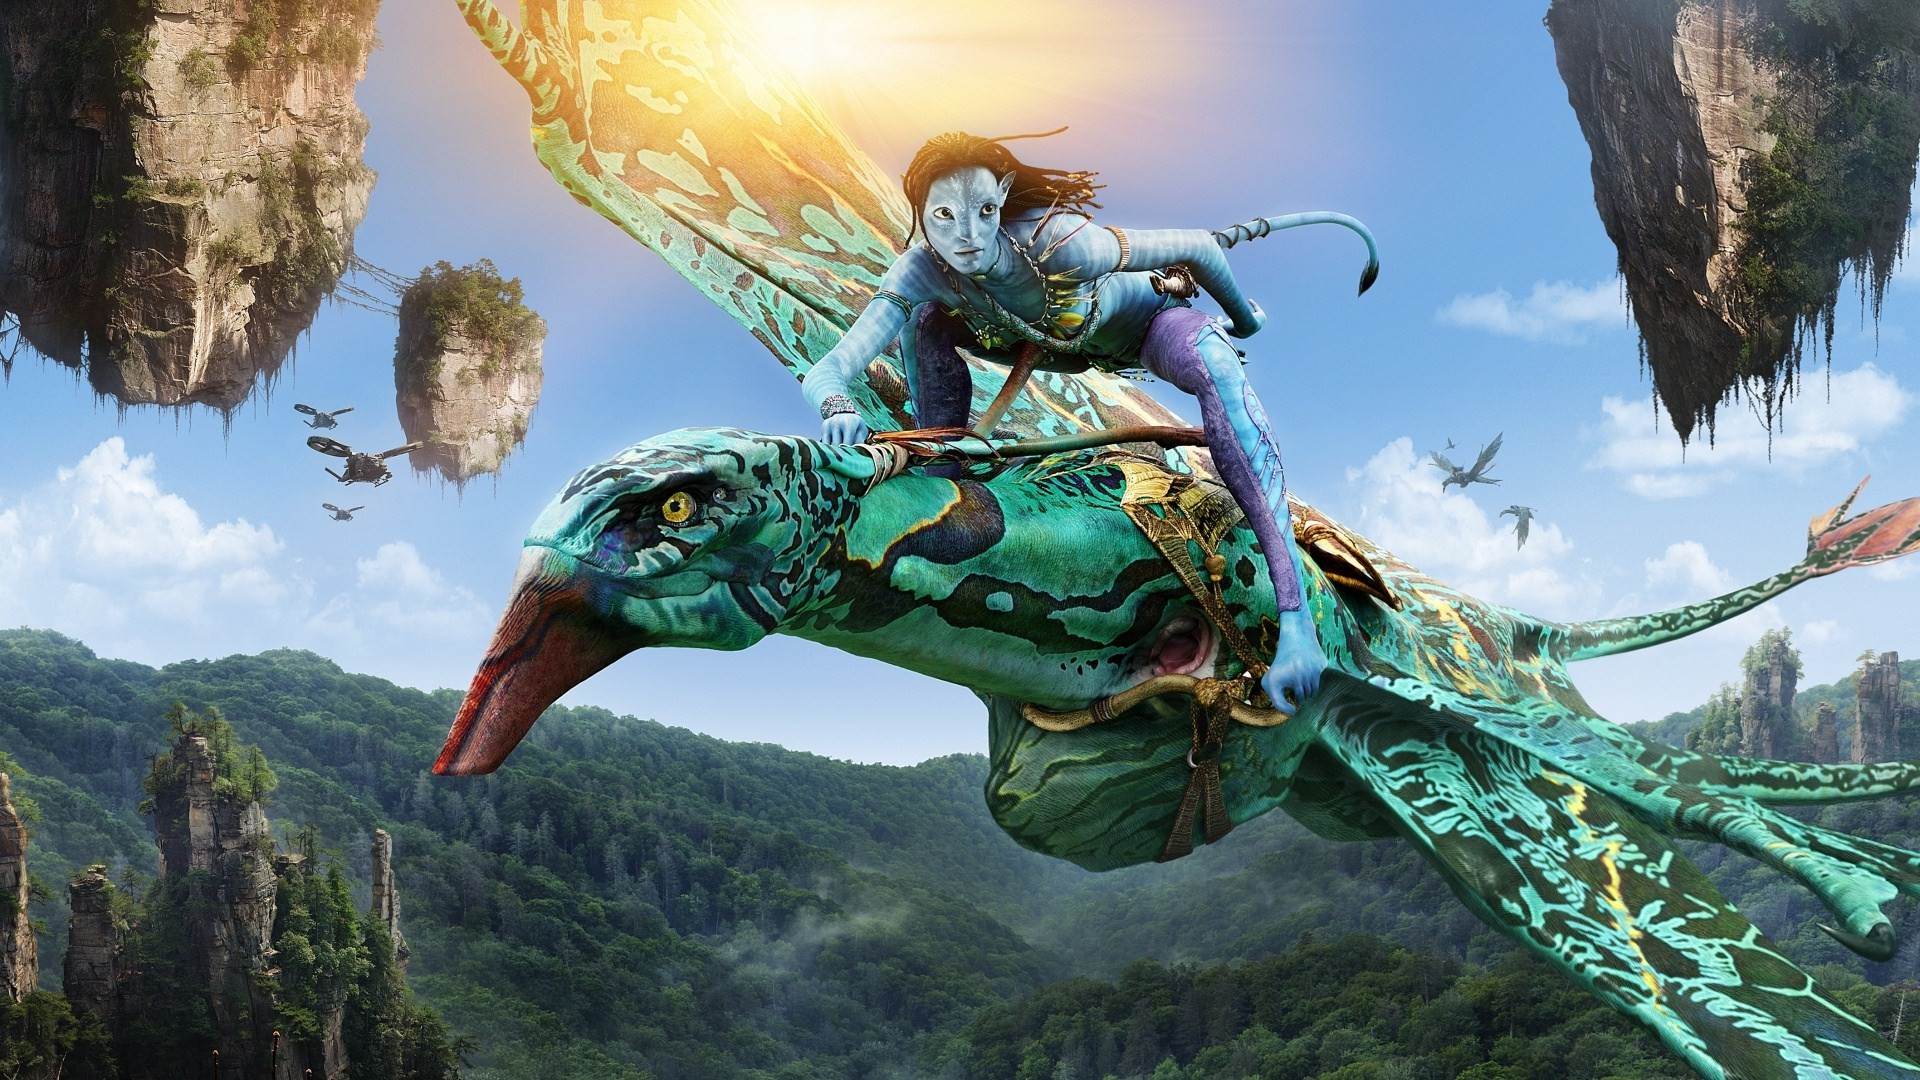 1920x1080 Avatar Movie 23839  px. 261 Avatar HD Wallpapers ...